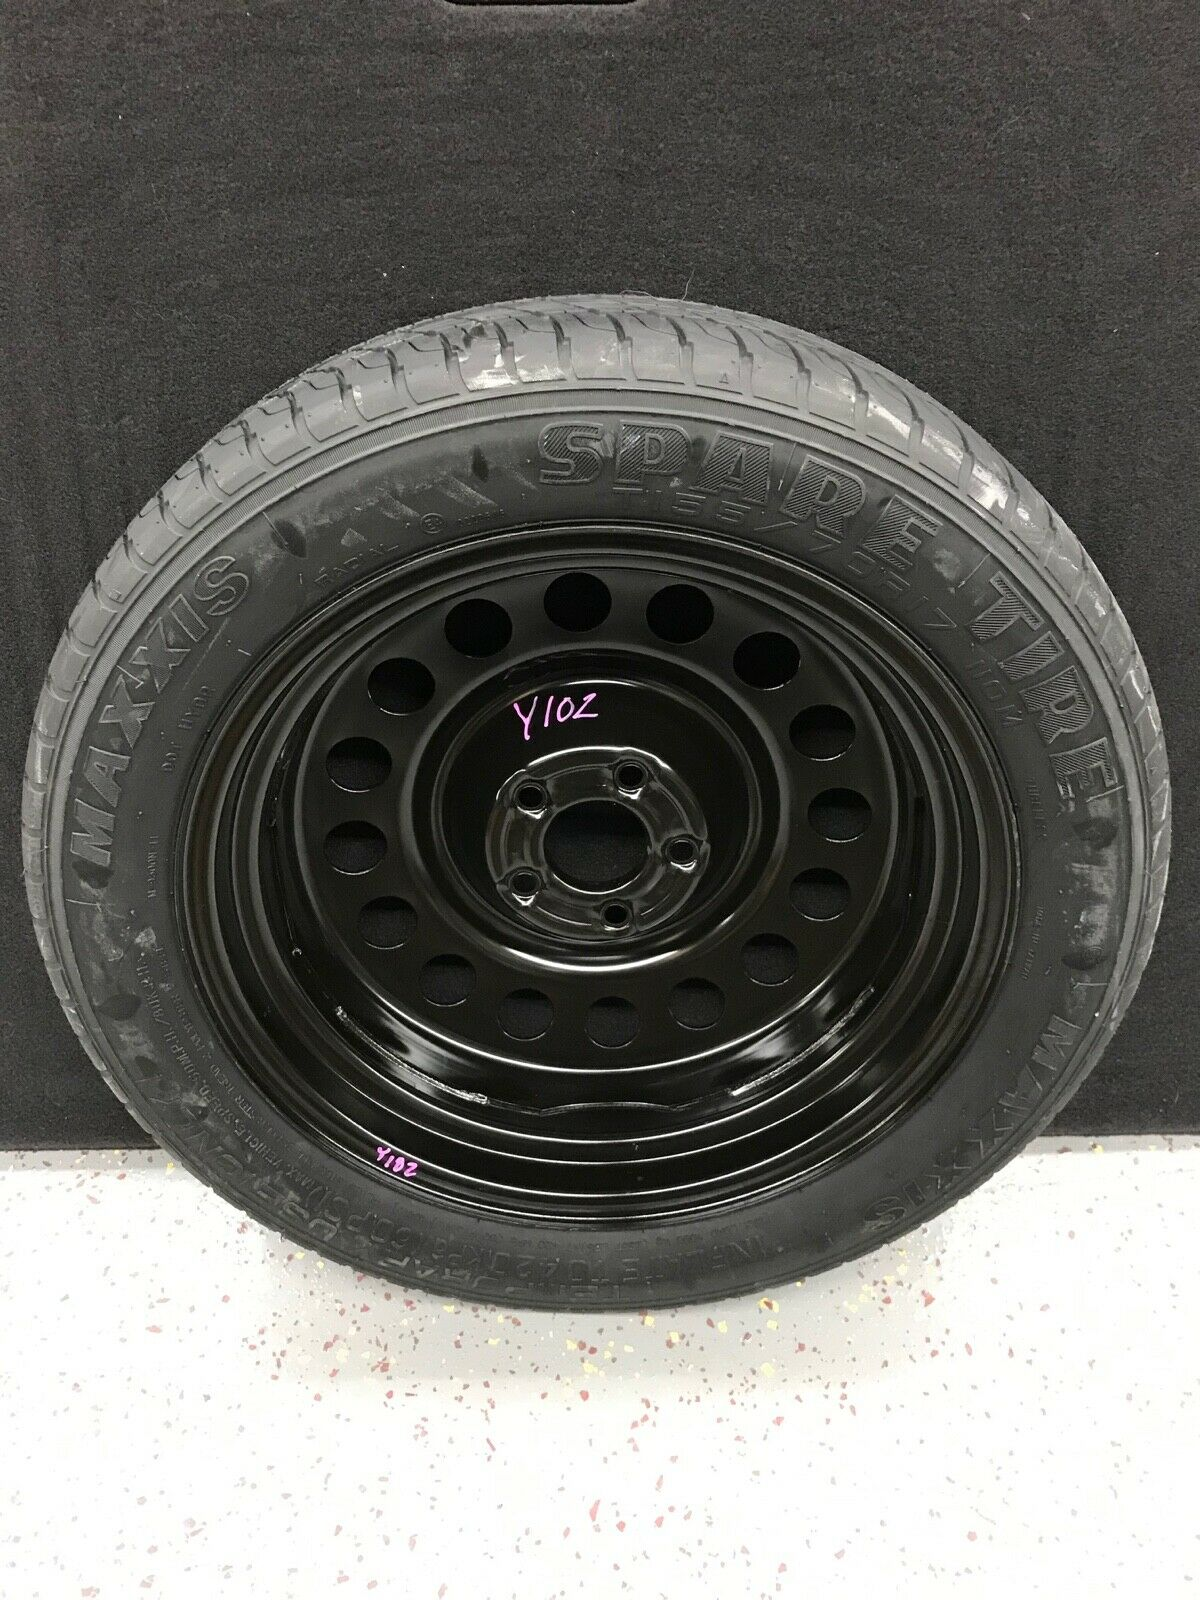 Maxxis Ford Escape Part T 155 / 70 / R17 110M Donut Steel Spare Tire Wheel  Does not apply